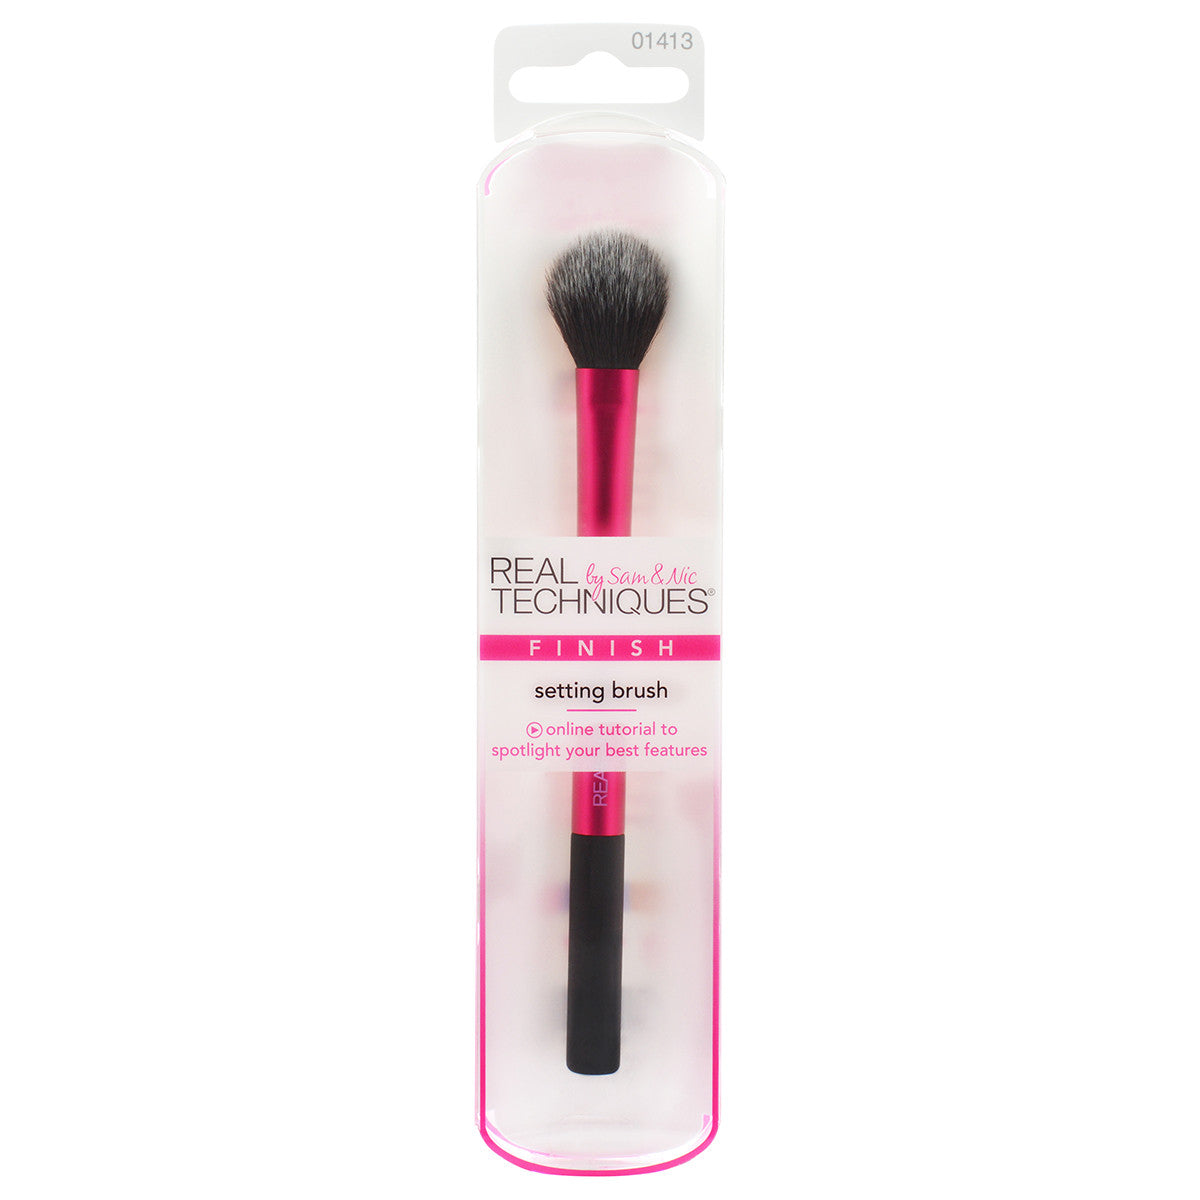 Real Technique setting brush - AmericanShop ByHanan